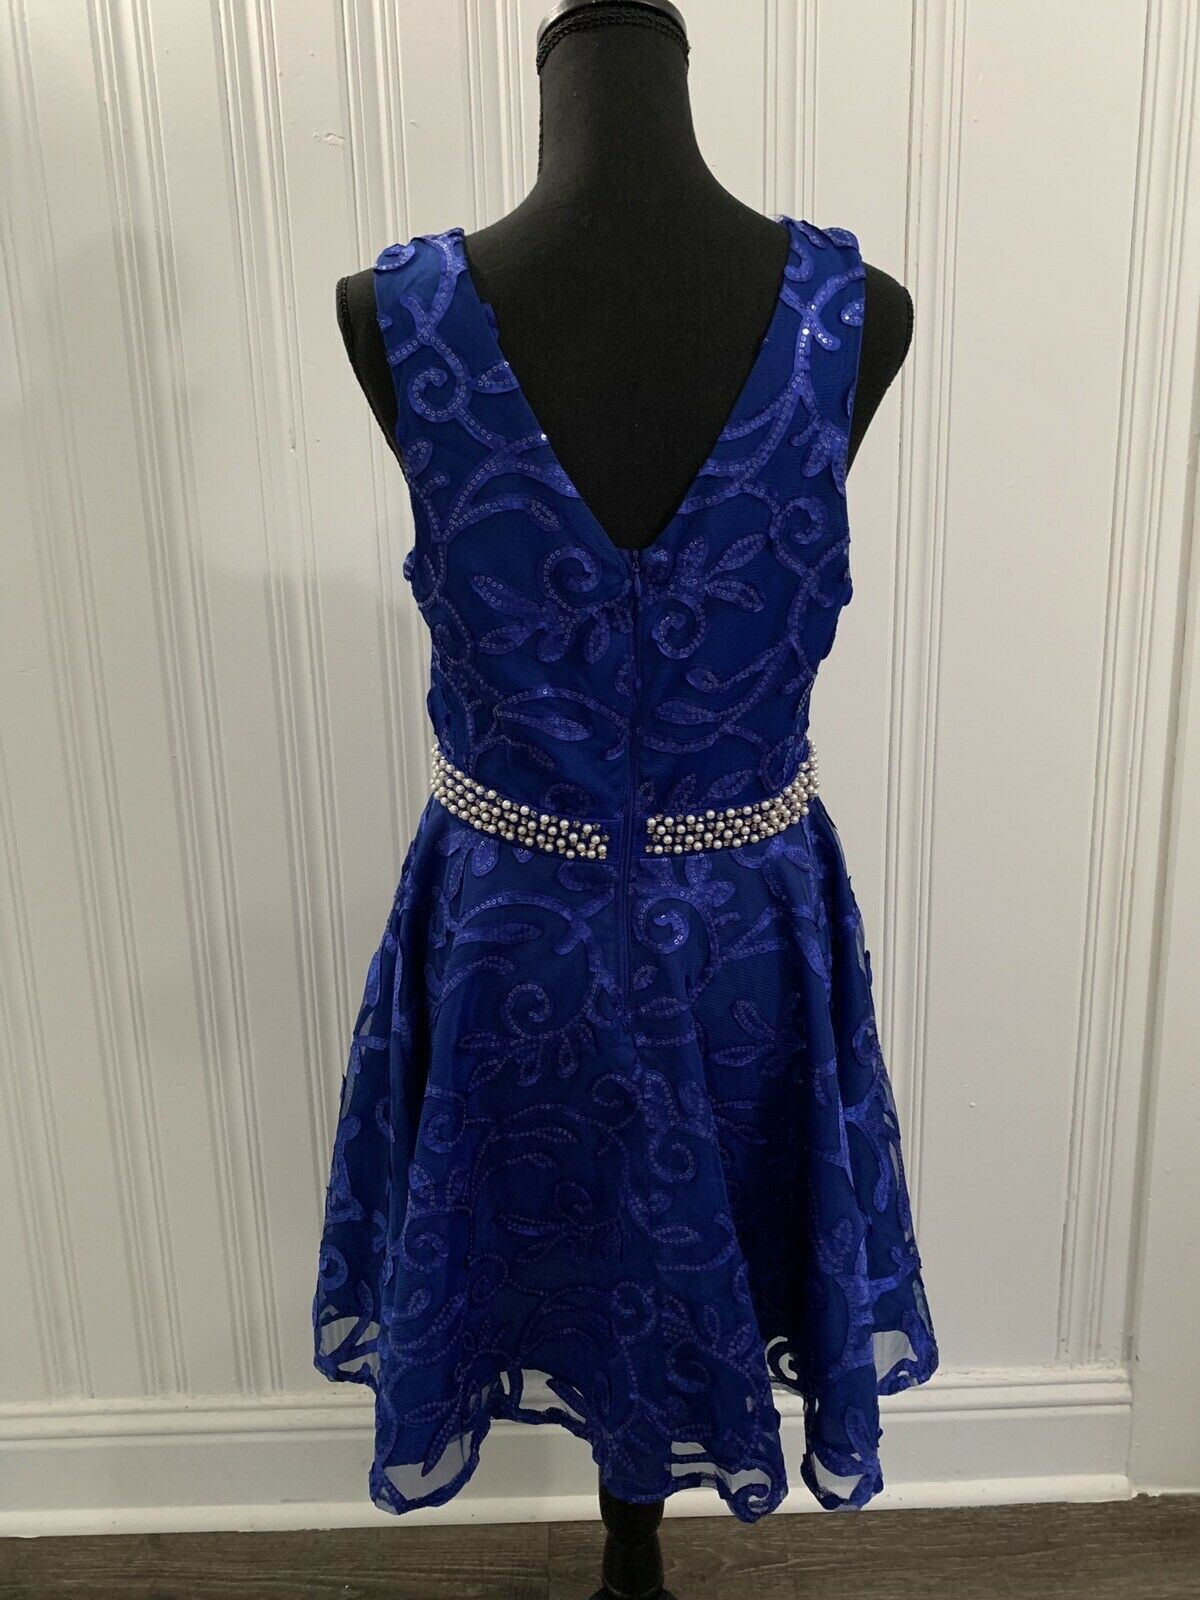 ROYAL BLUE Flower Girl Dress Birthday Pageant Homecoming Dance Wedding Party